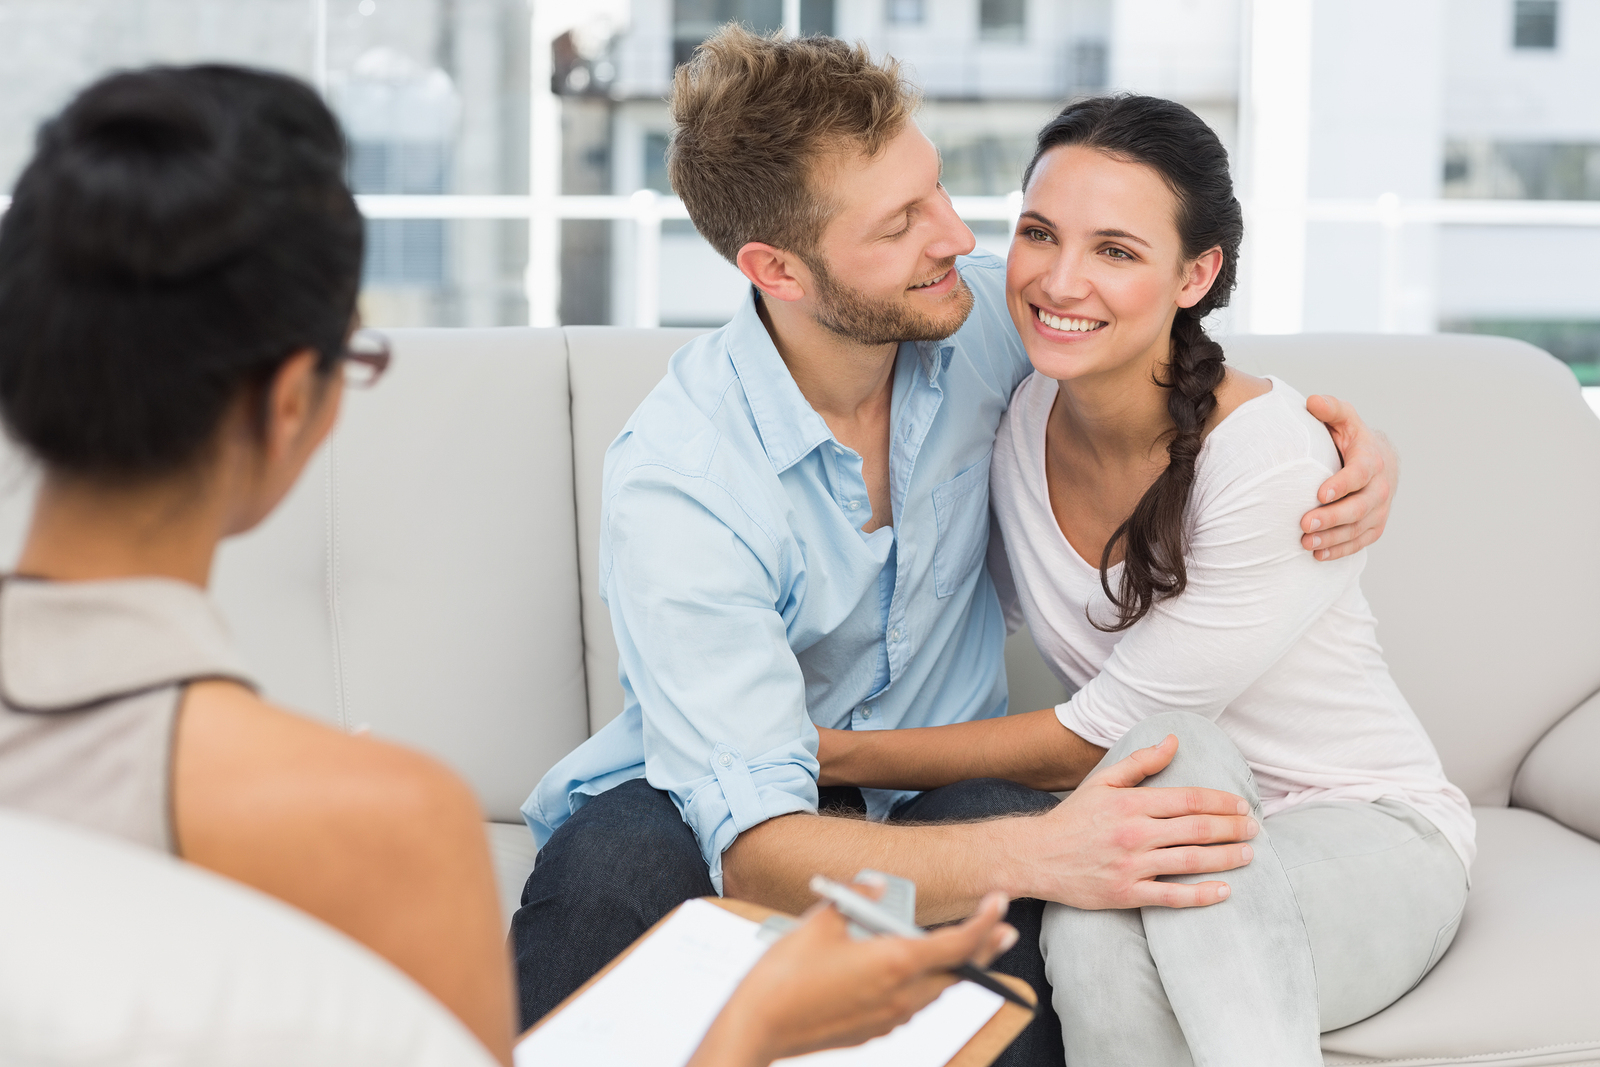 dating counselors 7 things your marriage counselor wants you to know learn what experts really think about how well you listen, argue and more  more from dating + marriage.